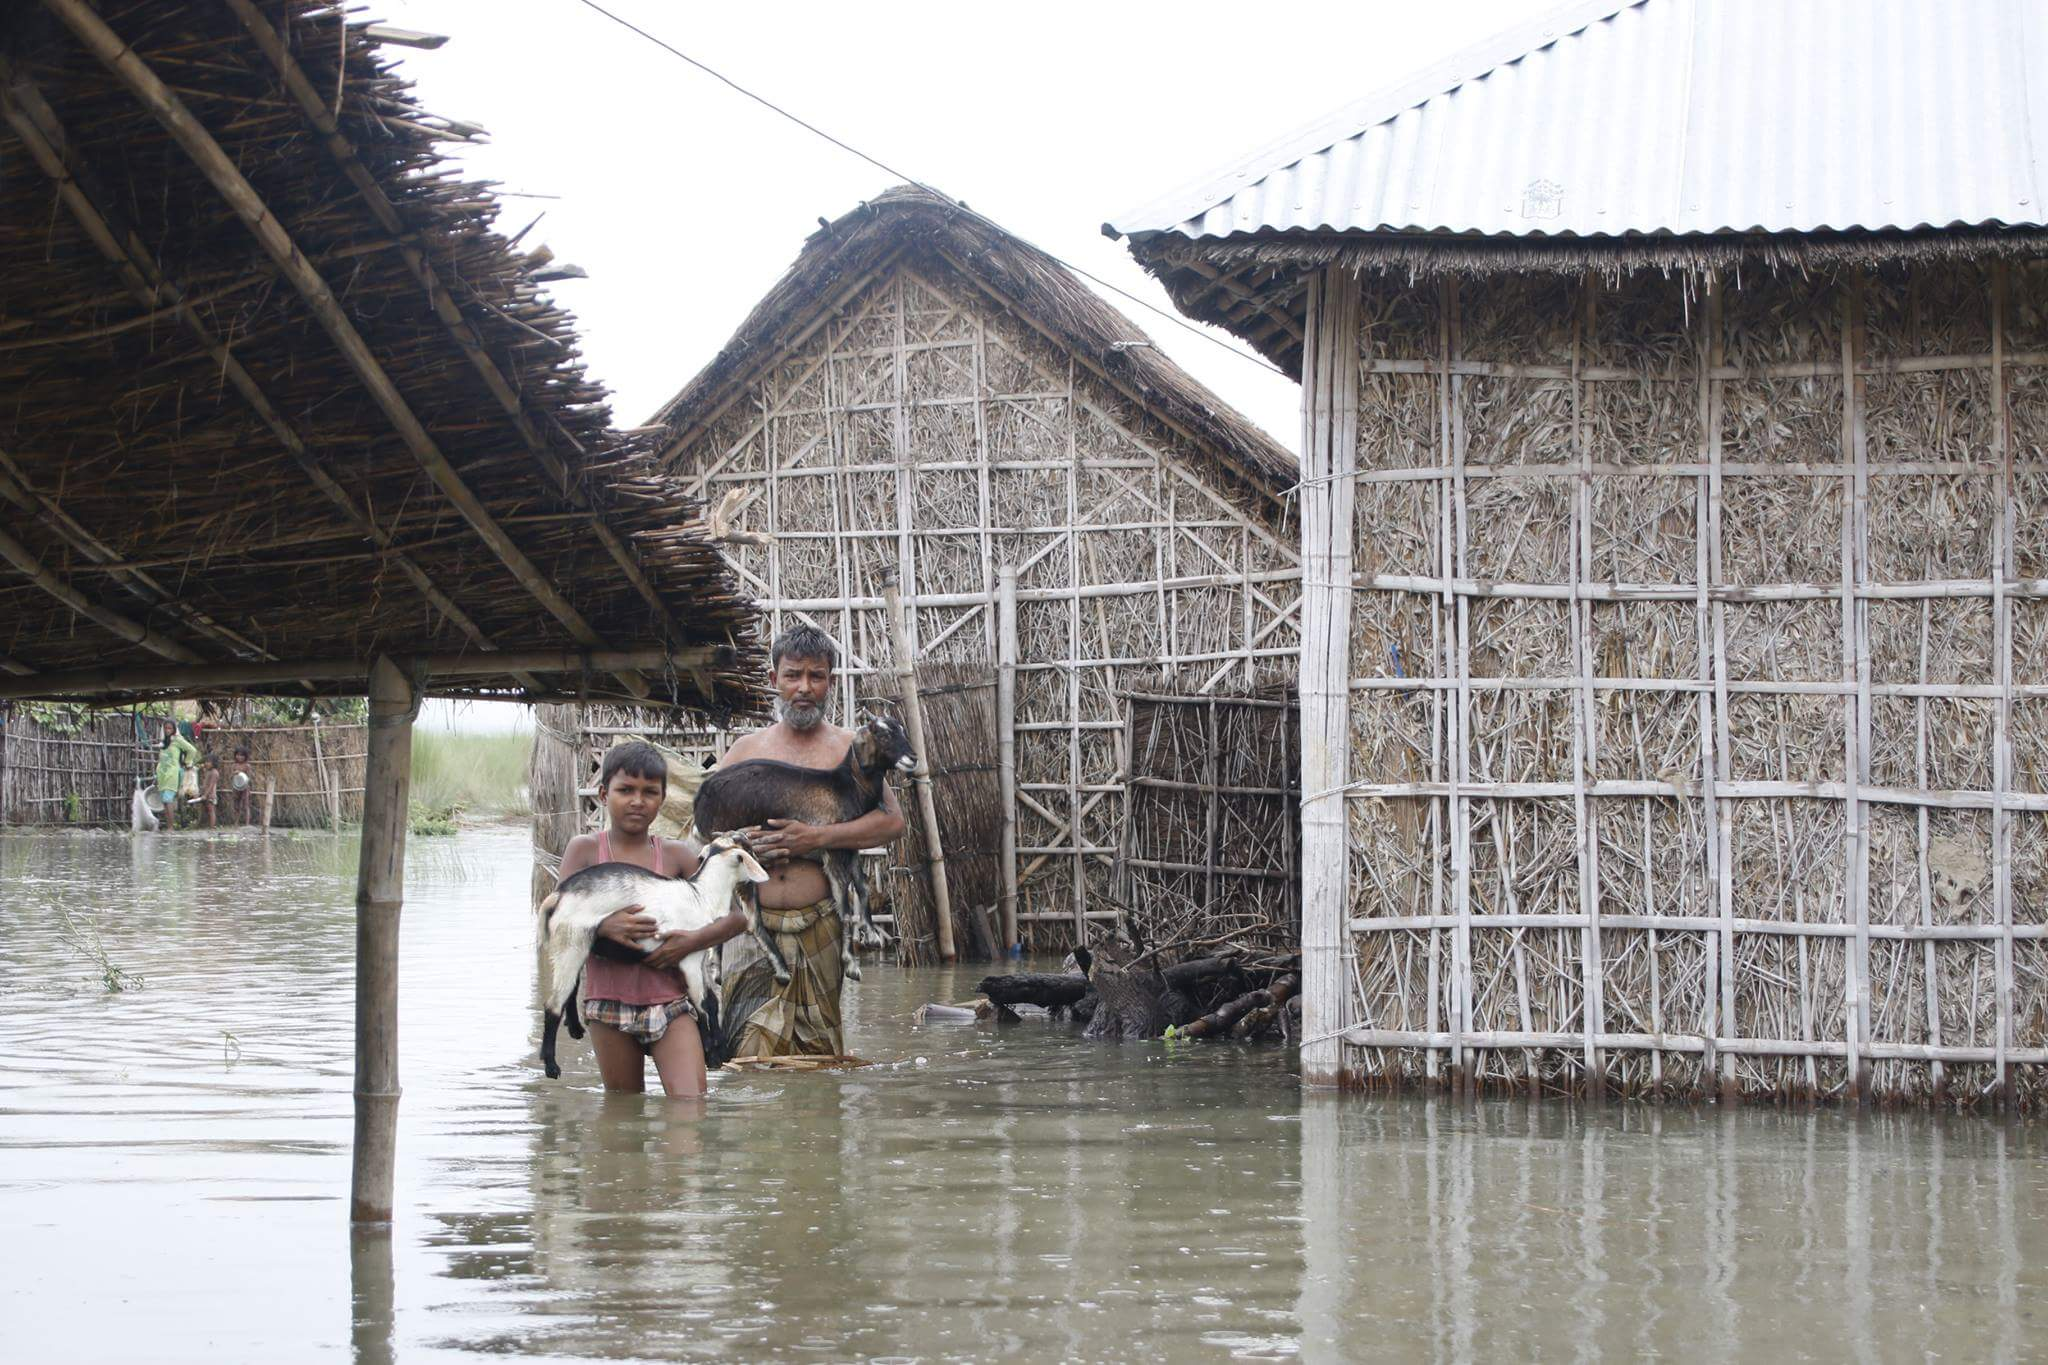 Floods, landslides kill 47 in Nepal